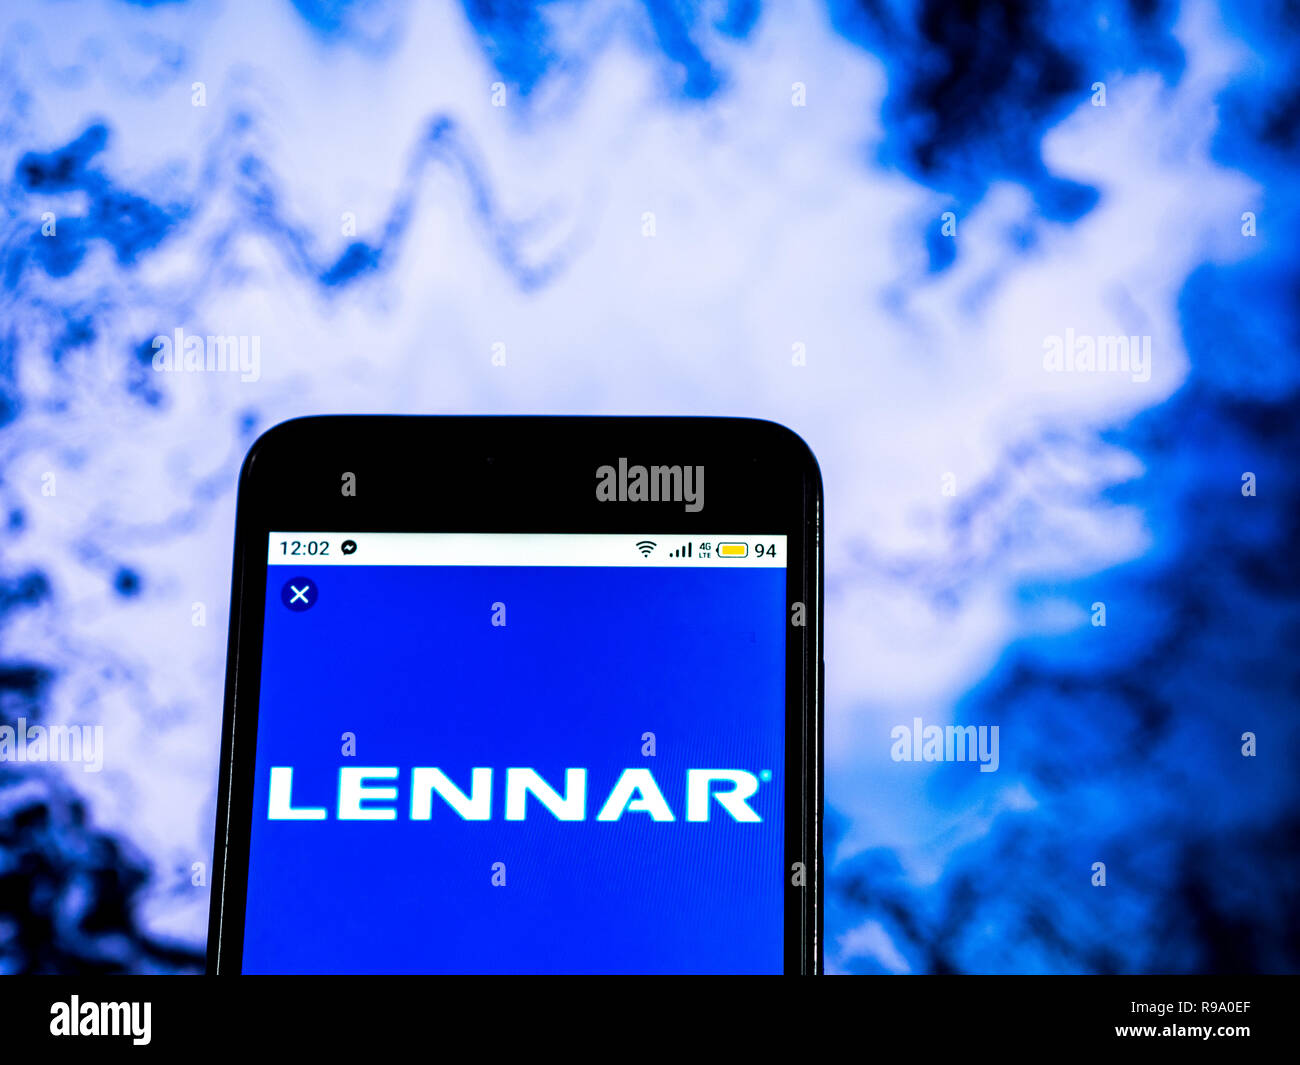 hight resolution of lennar corporation home construction company logo seen displayed on smart phone